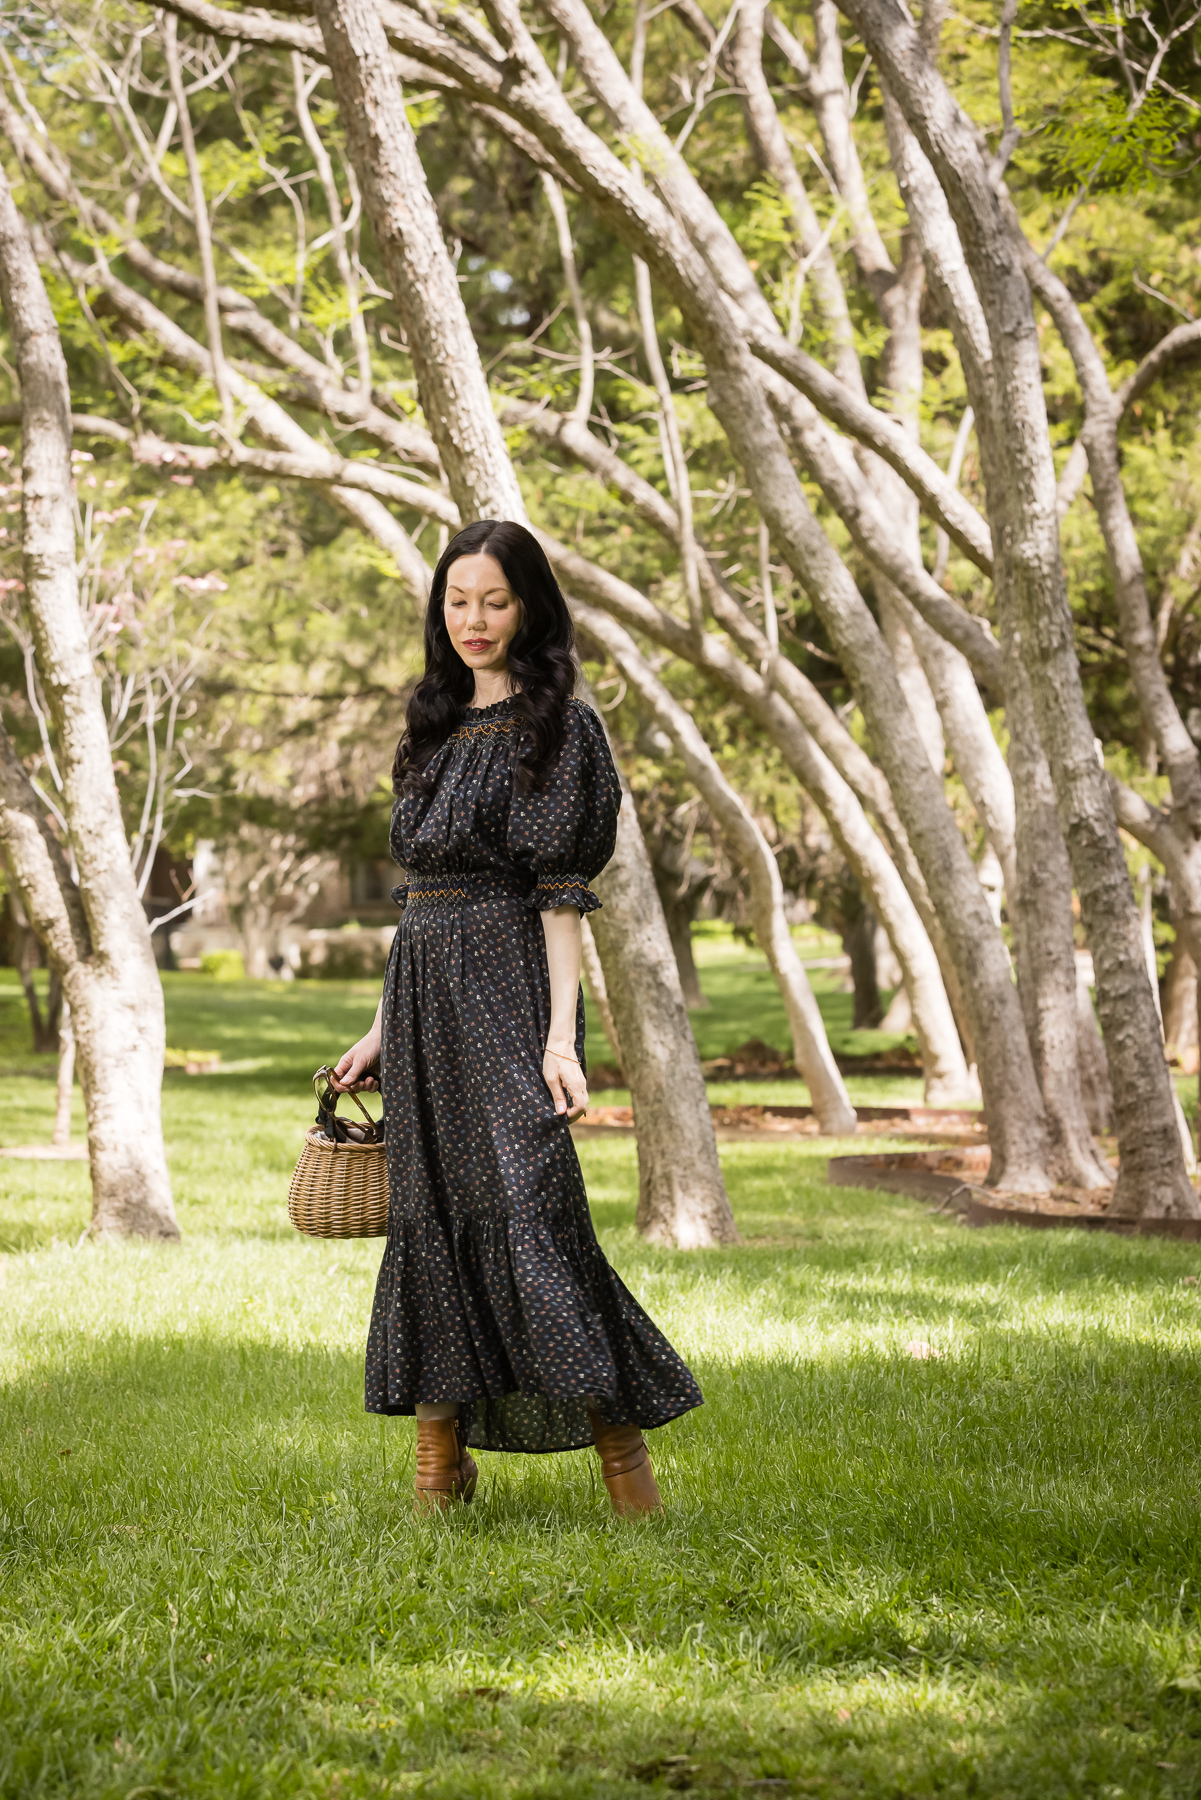 Doen Prairie Dress, Pixie Market Straw Bag, Distressed Ankle Boots | Prairie Dress by popular Dallas fashion blog, Pretty Little Shoppers: image of a woman walking outside on some grass under some trees and wearing a black Down prairie dress, tan boots, and holding a woven handbag